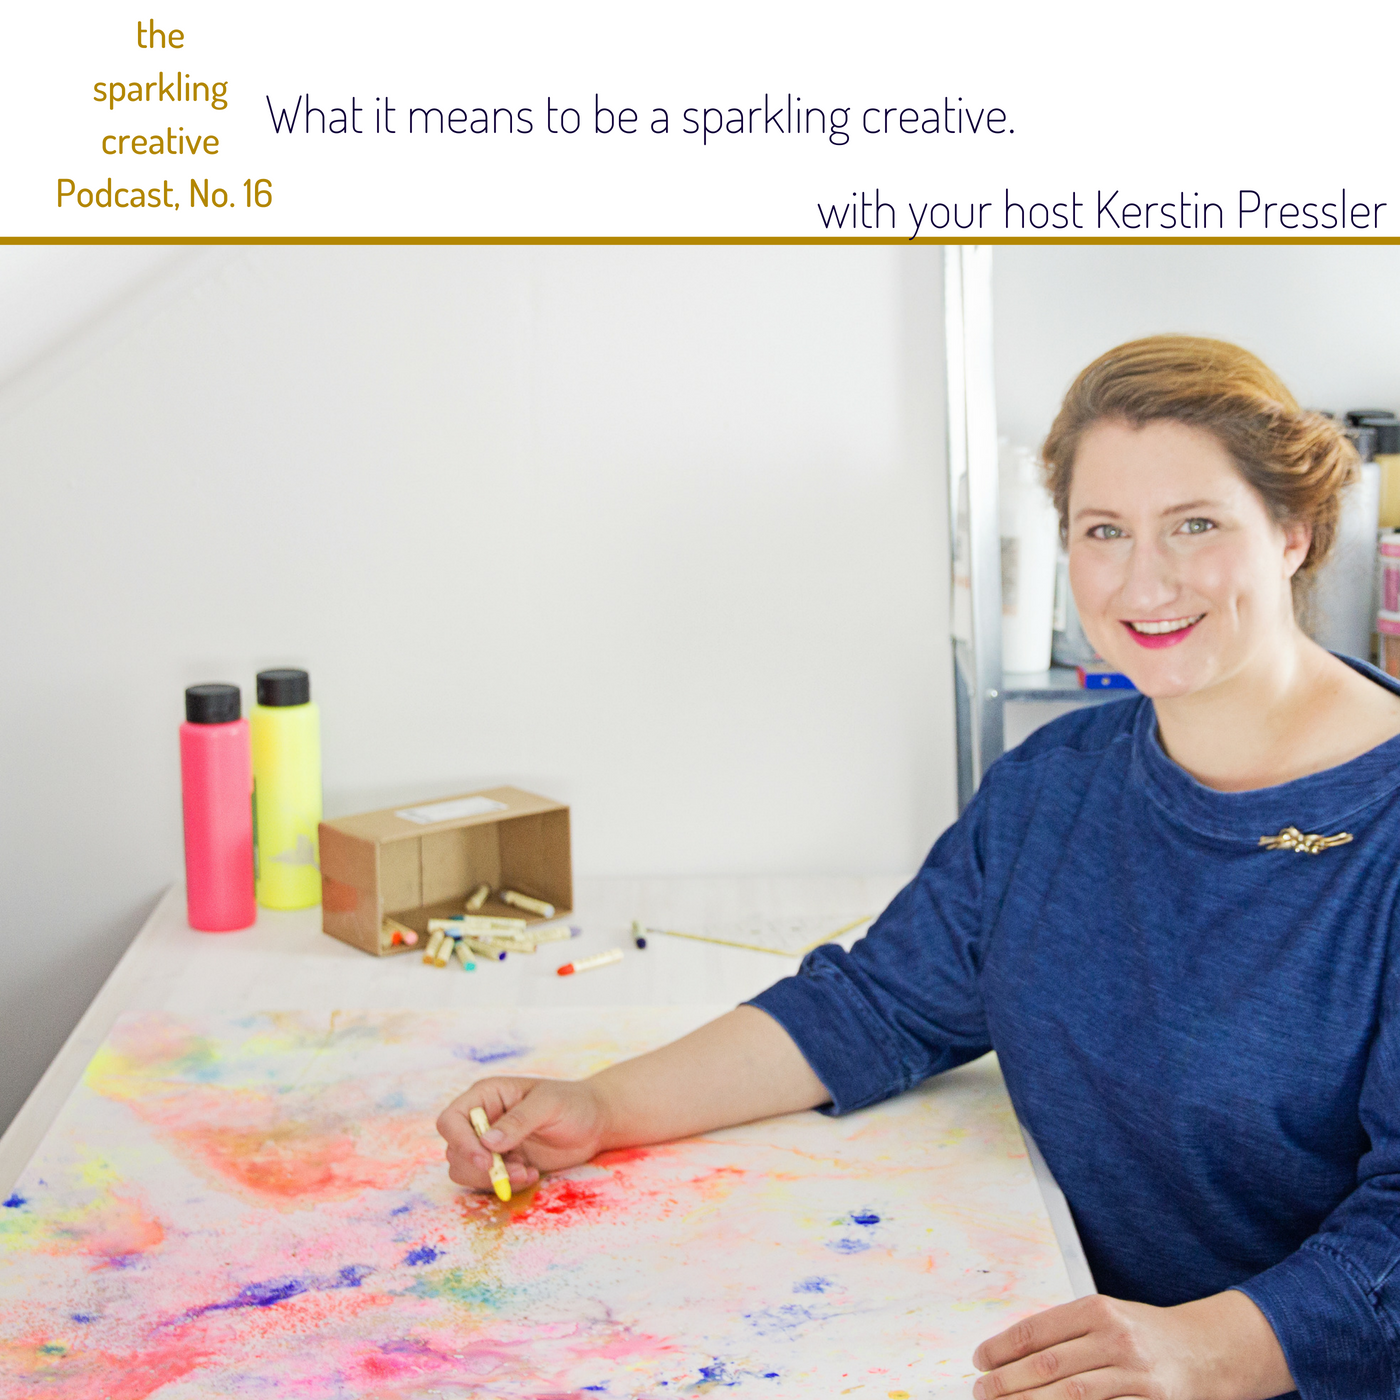 the sparkling creative Podcast No. 16, What it means to be a sparkling creative.